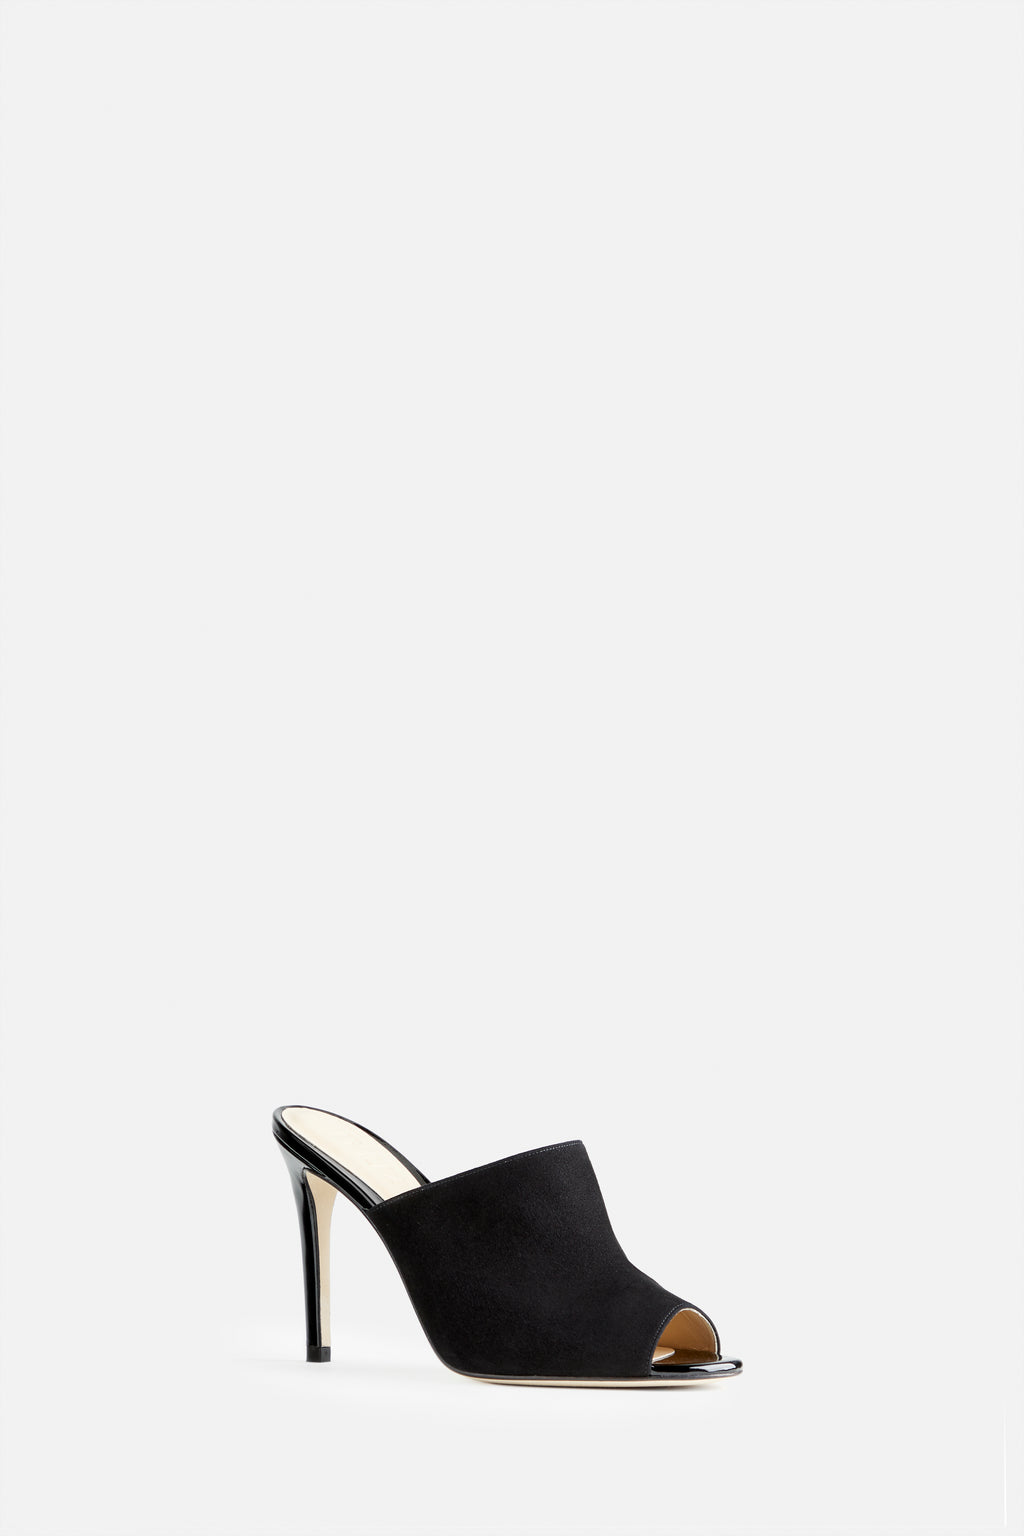 The Alexis Stiletto Mule in Black Suede and Patent Leather